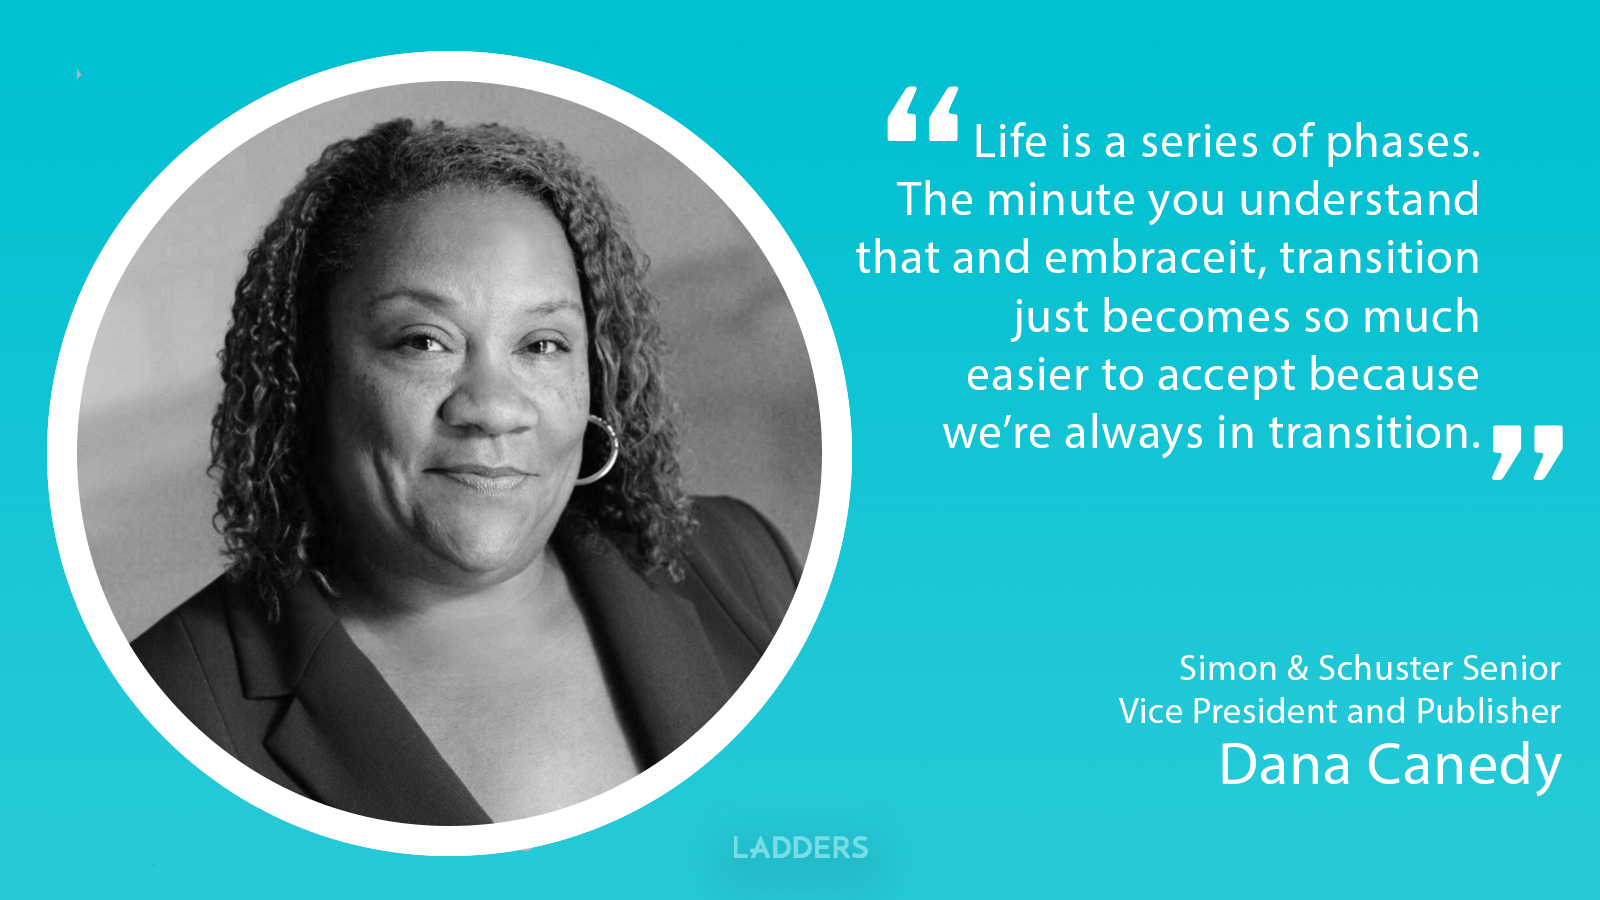 Simon & Schuster's new publisher Dana Canedy is proof that major career transitions can work